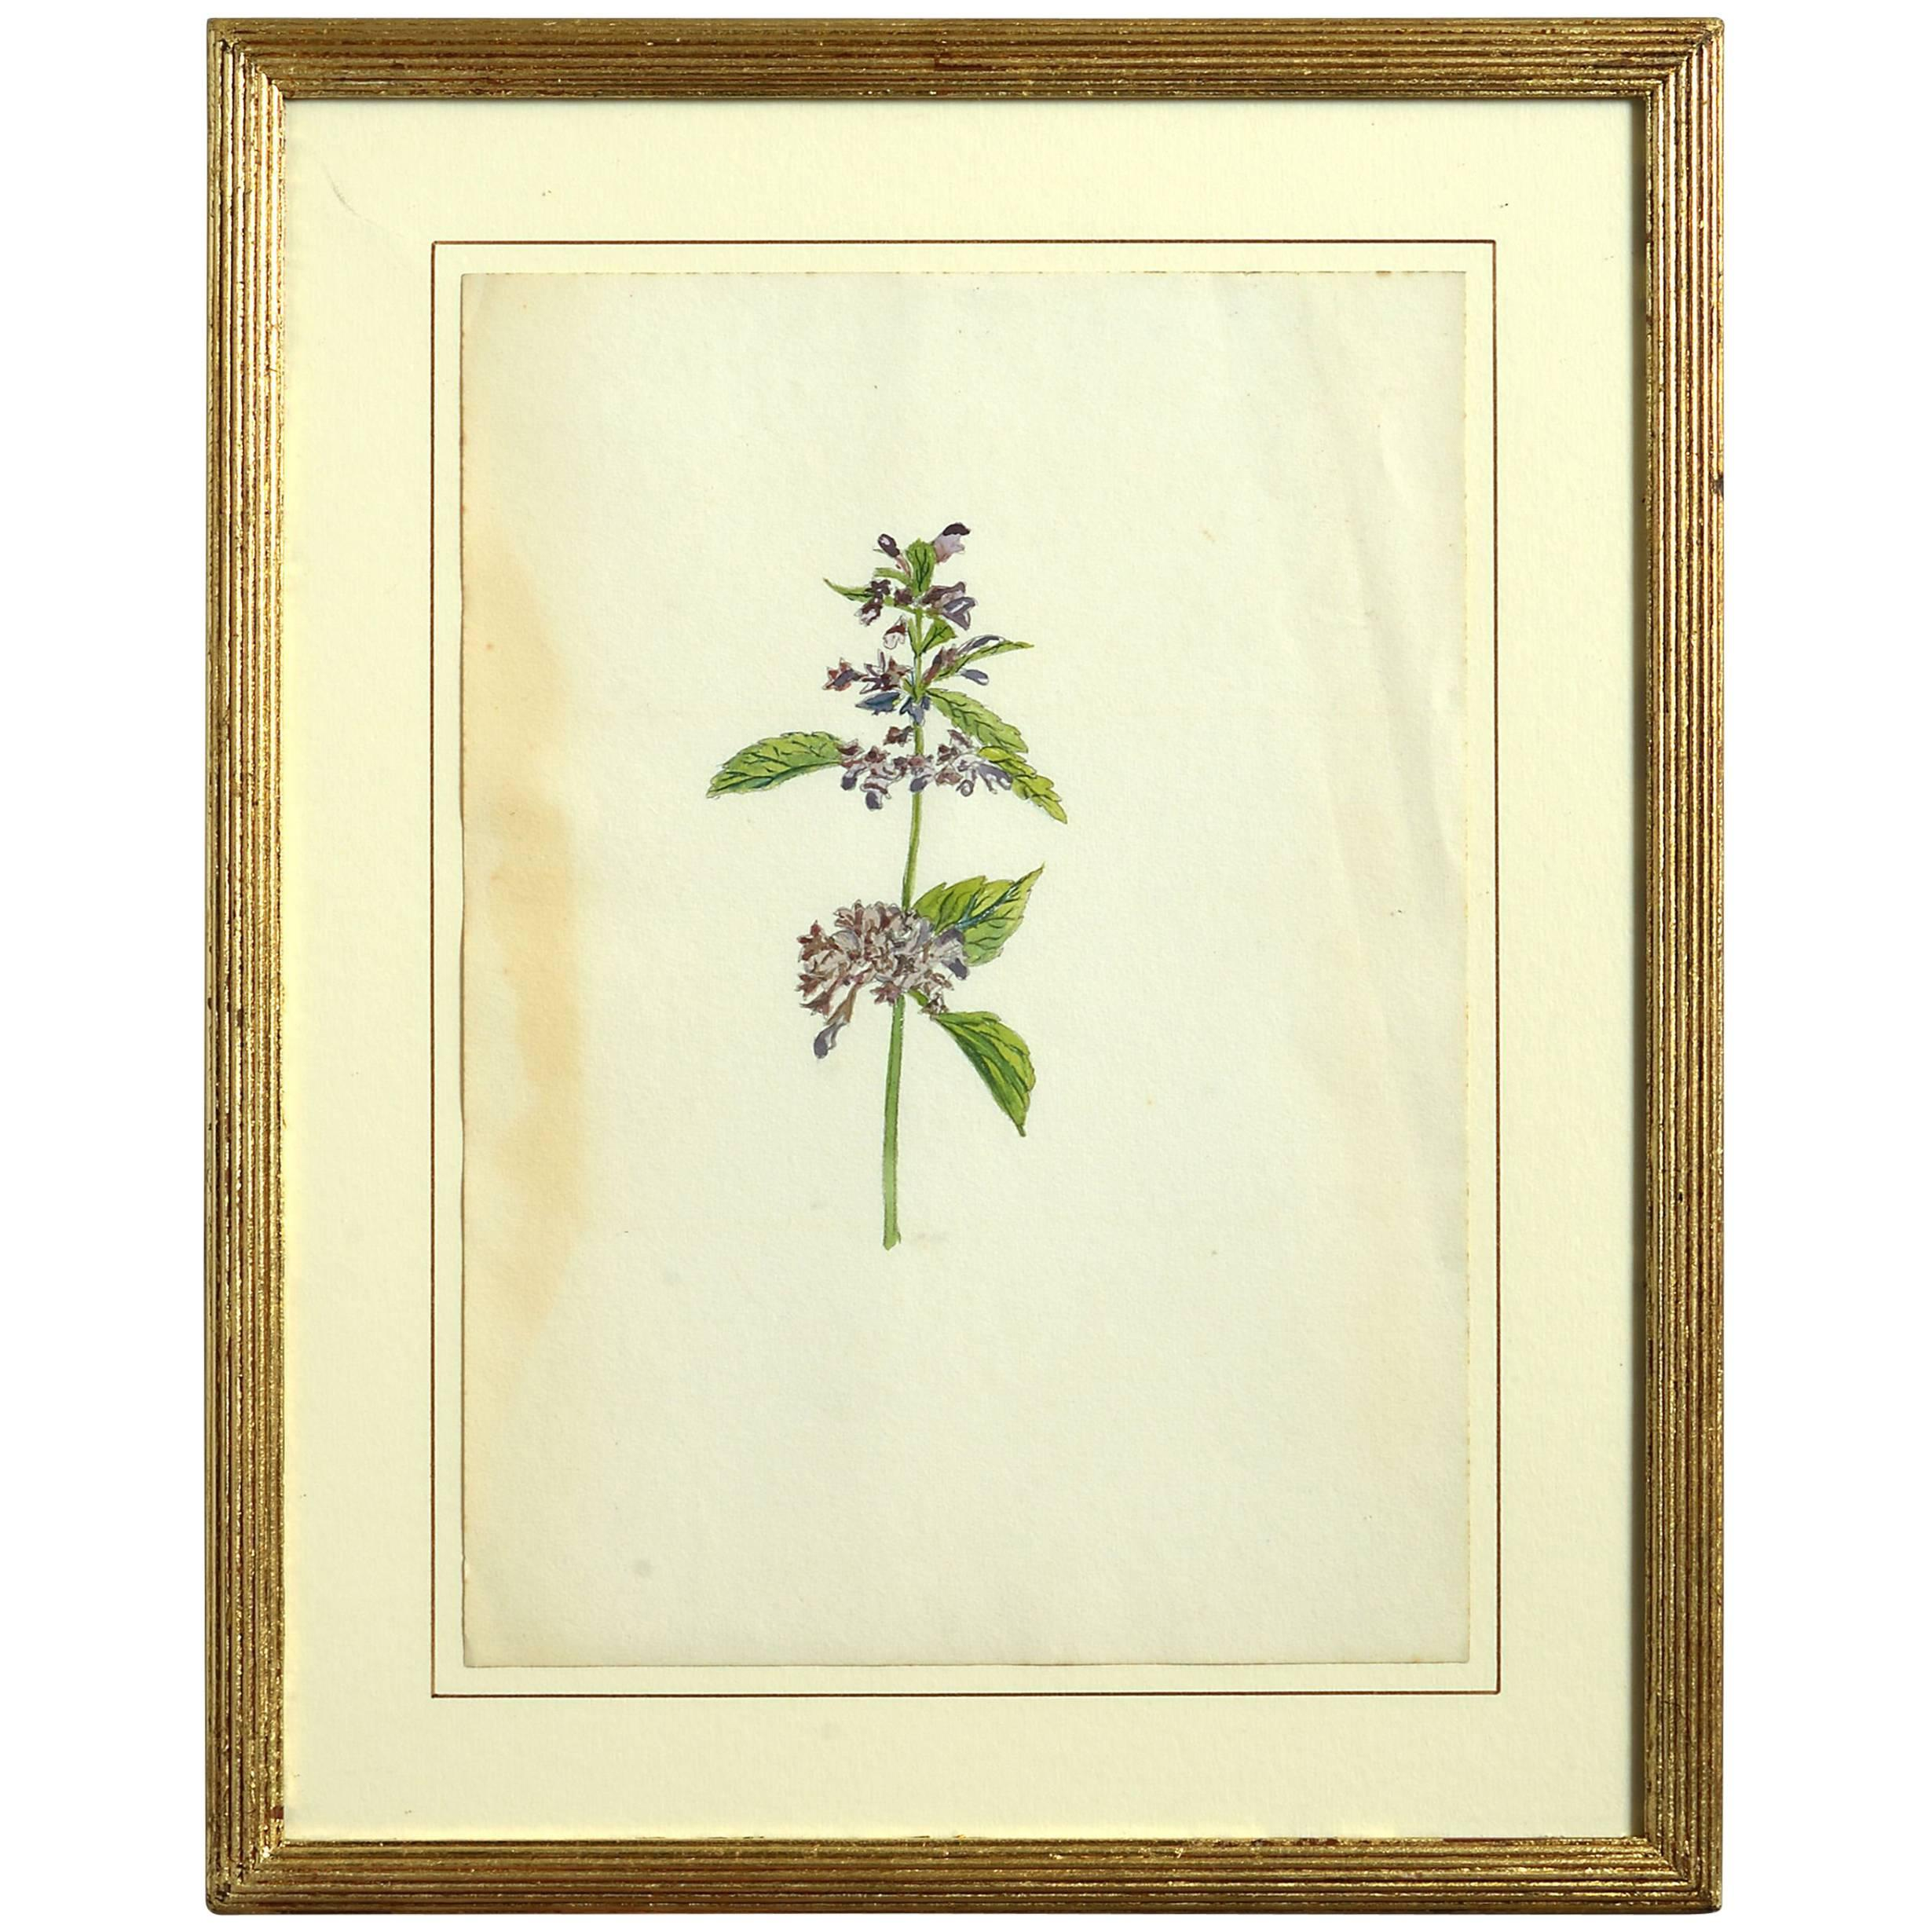 Late 19th Century Botanical Watercolor